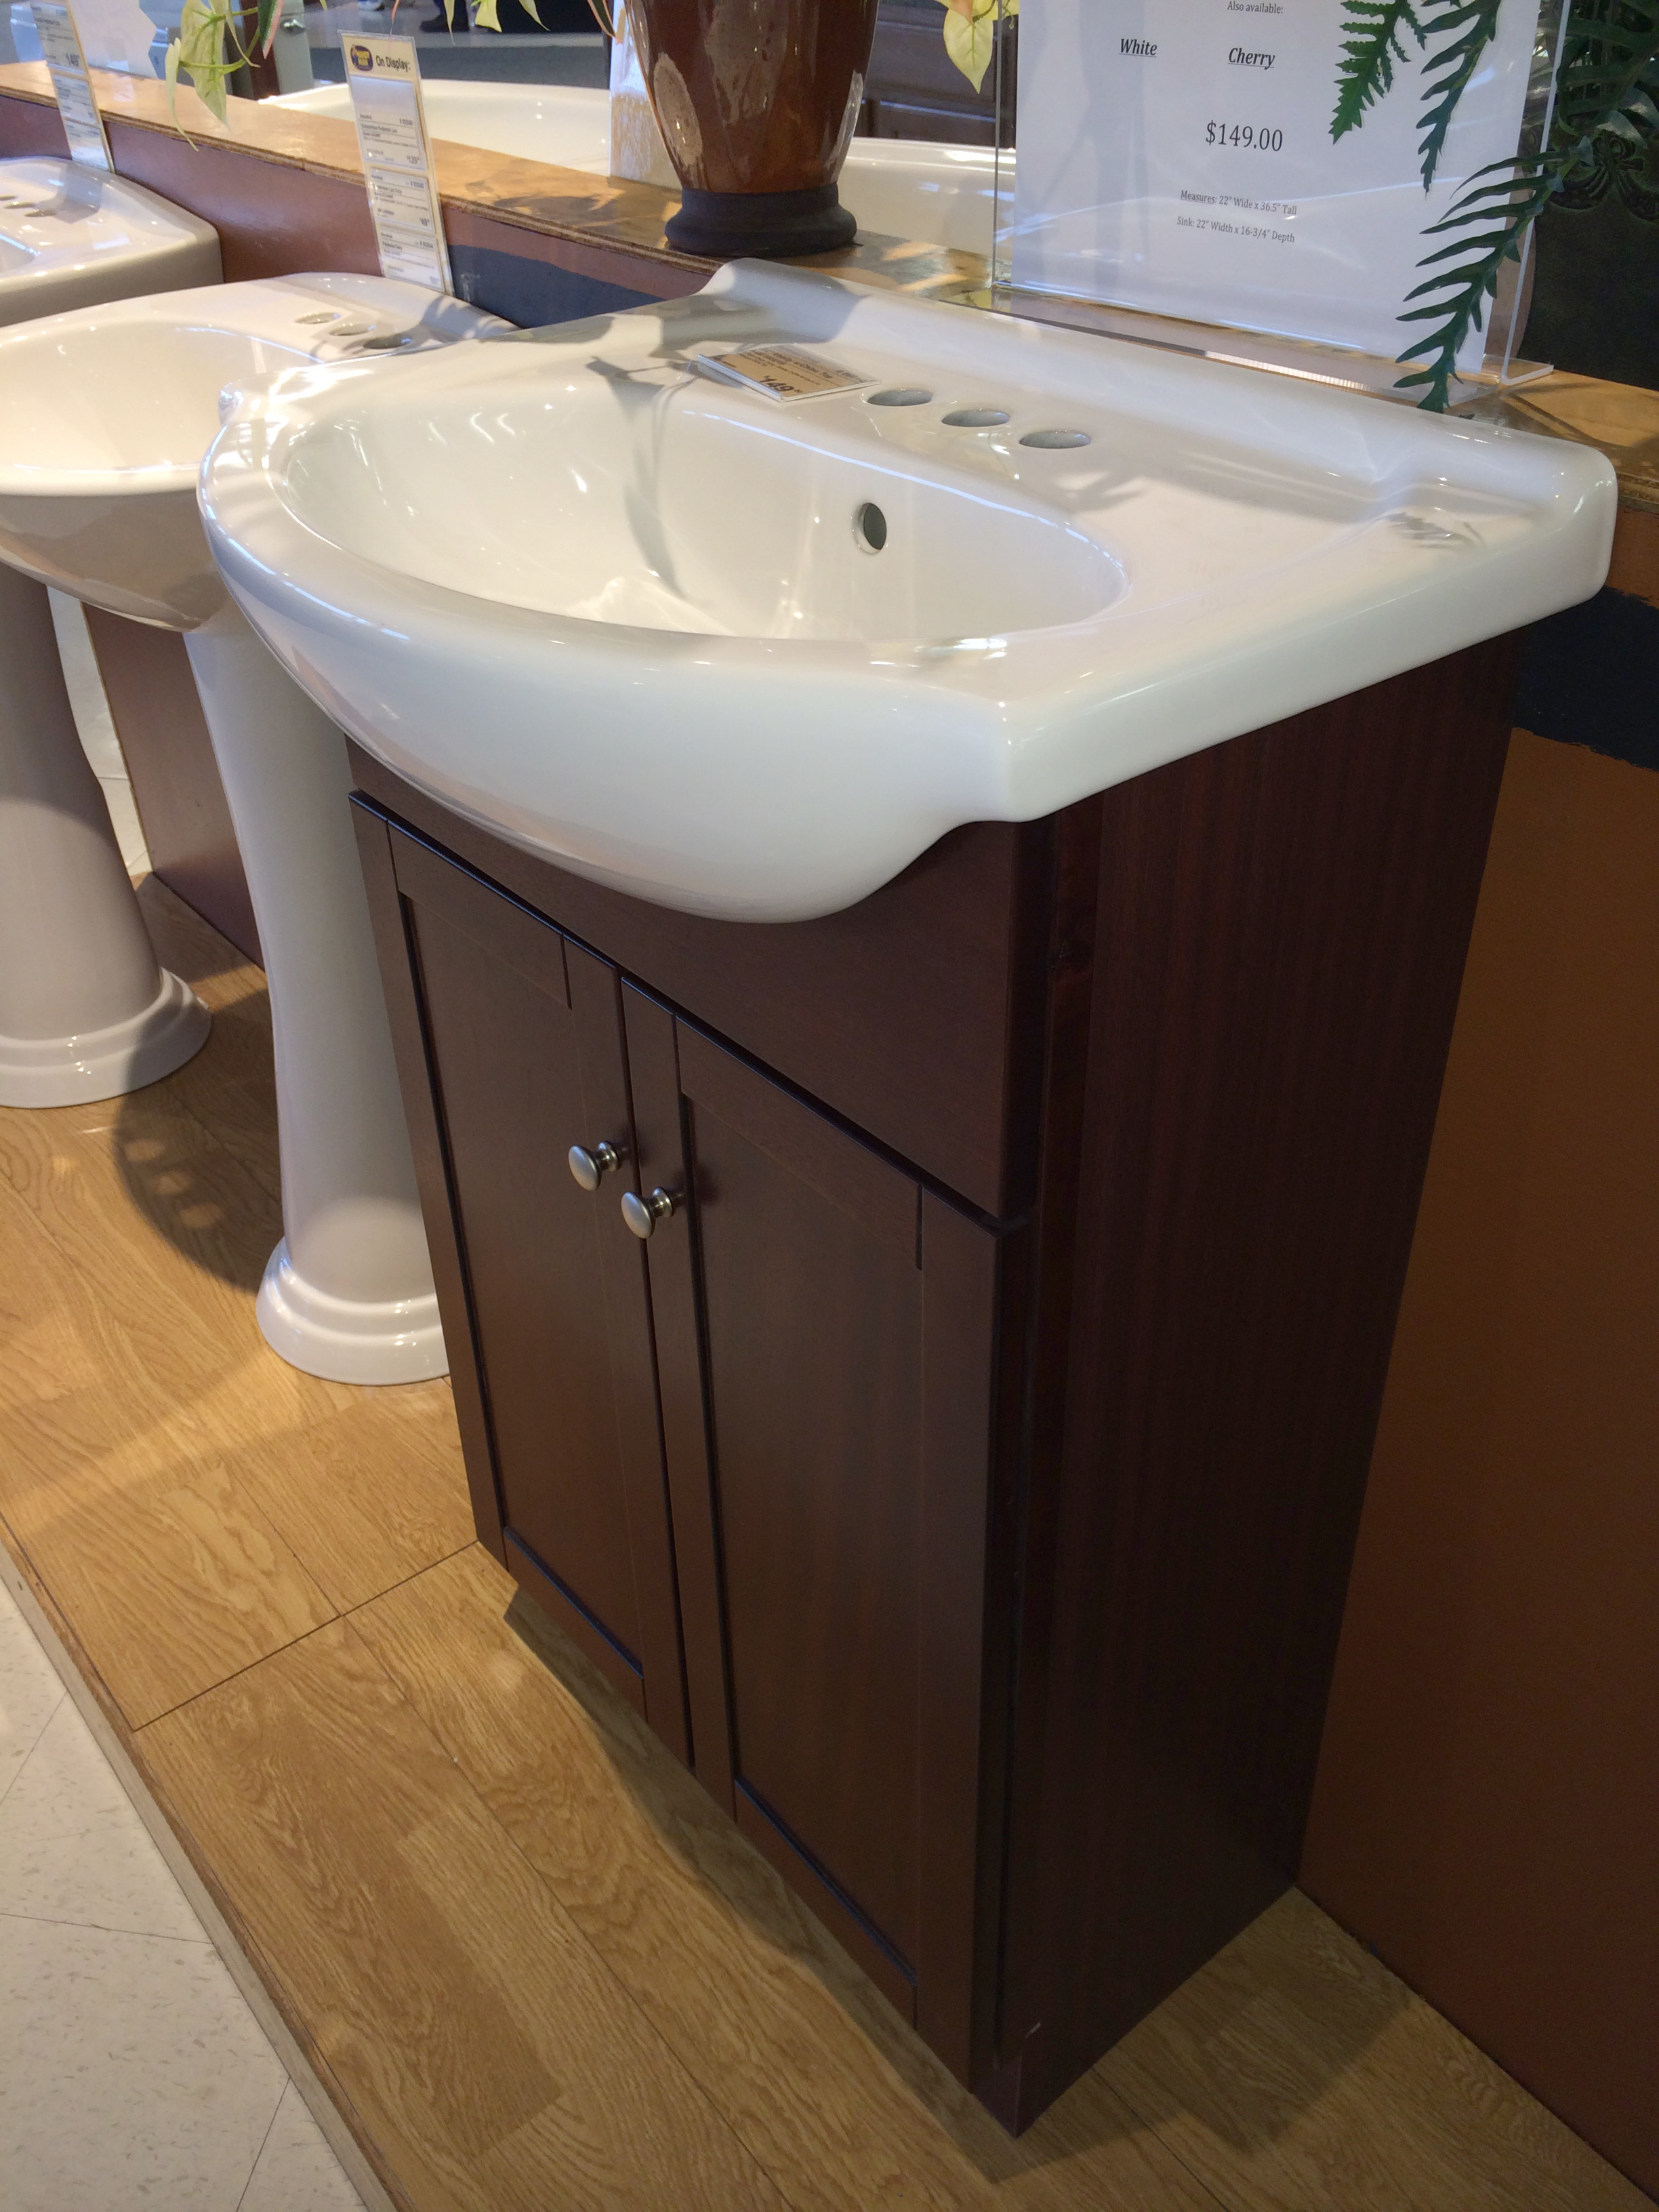 Sink Lavatory : ... Types of Sinks: Bathroom Lavatory / Pedestal Sink Handy Man